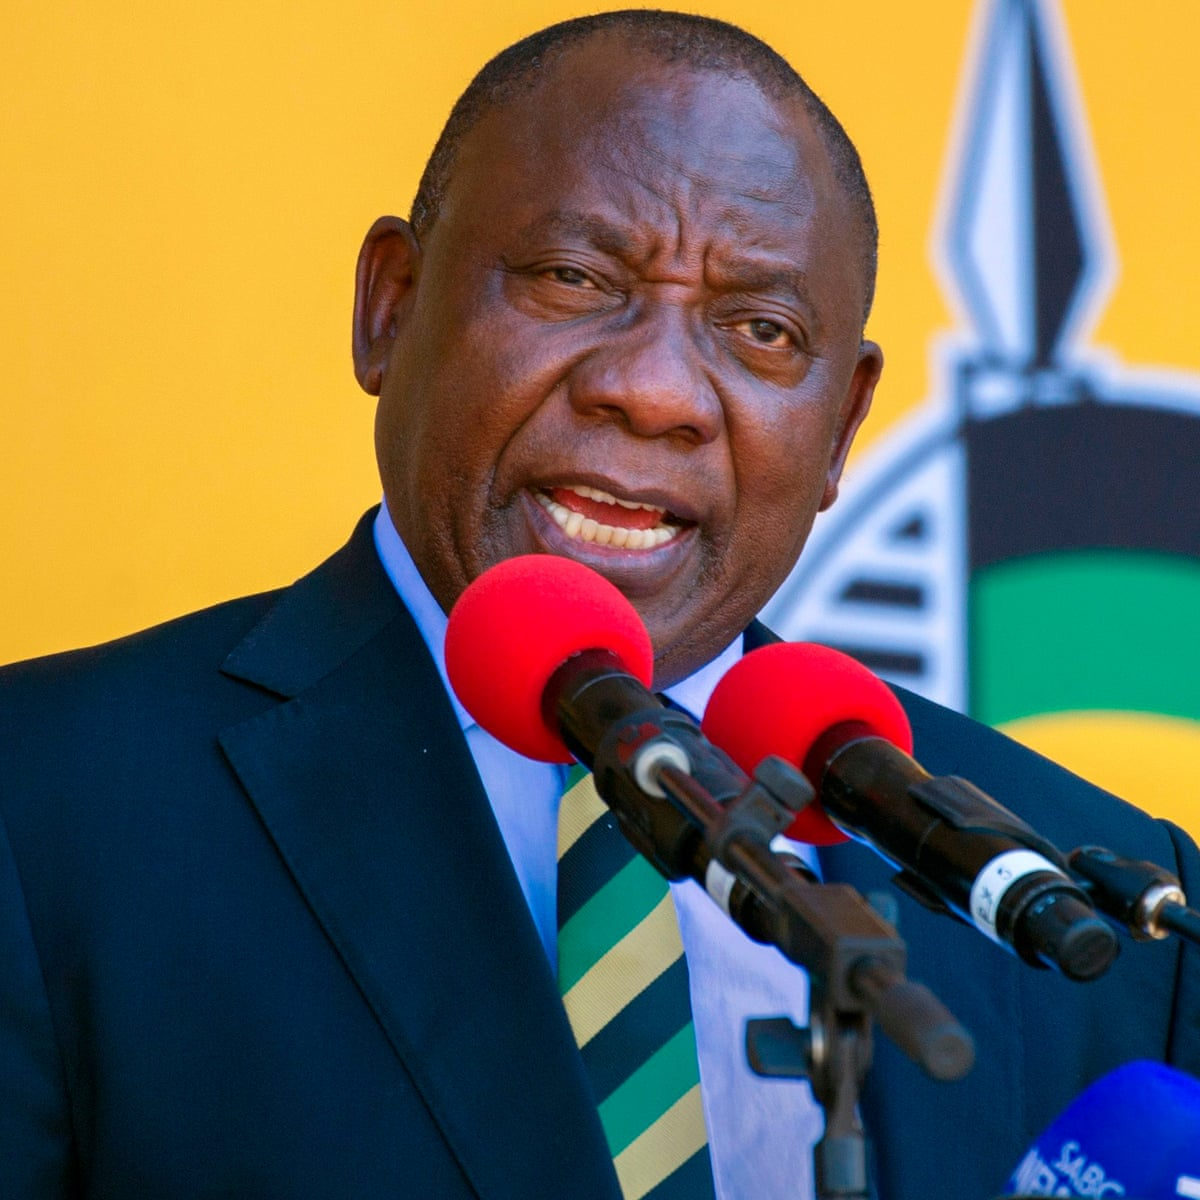 Who Is Cyril Ramaphosa South Africa S New Leader Faces Huge Challenges Cyril Ramaphosa The Guardian